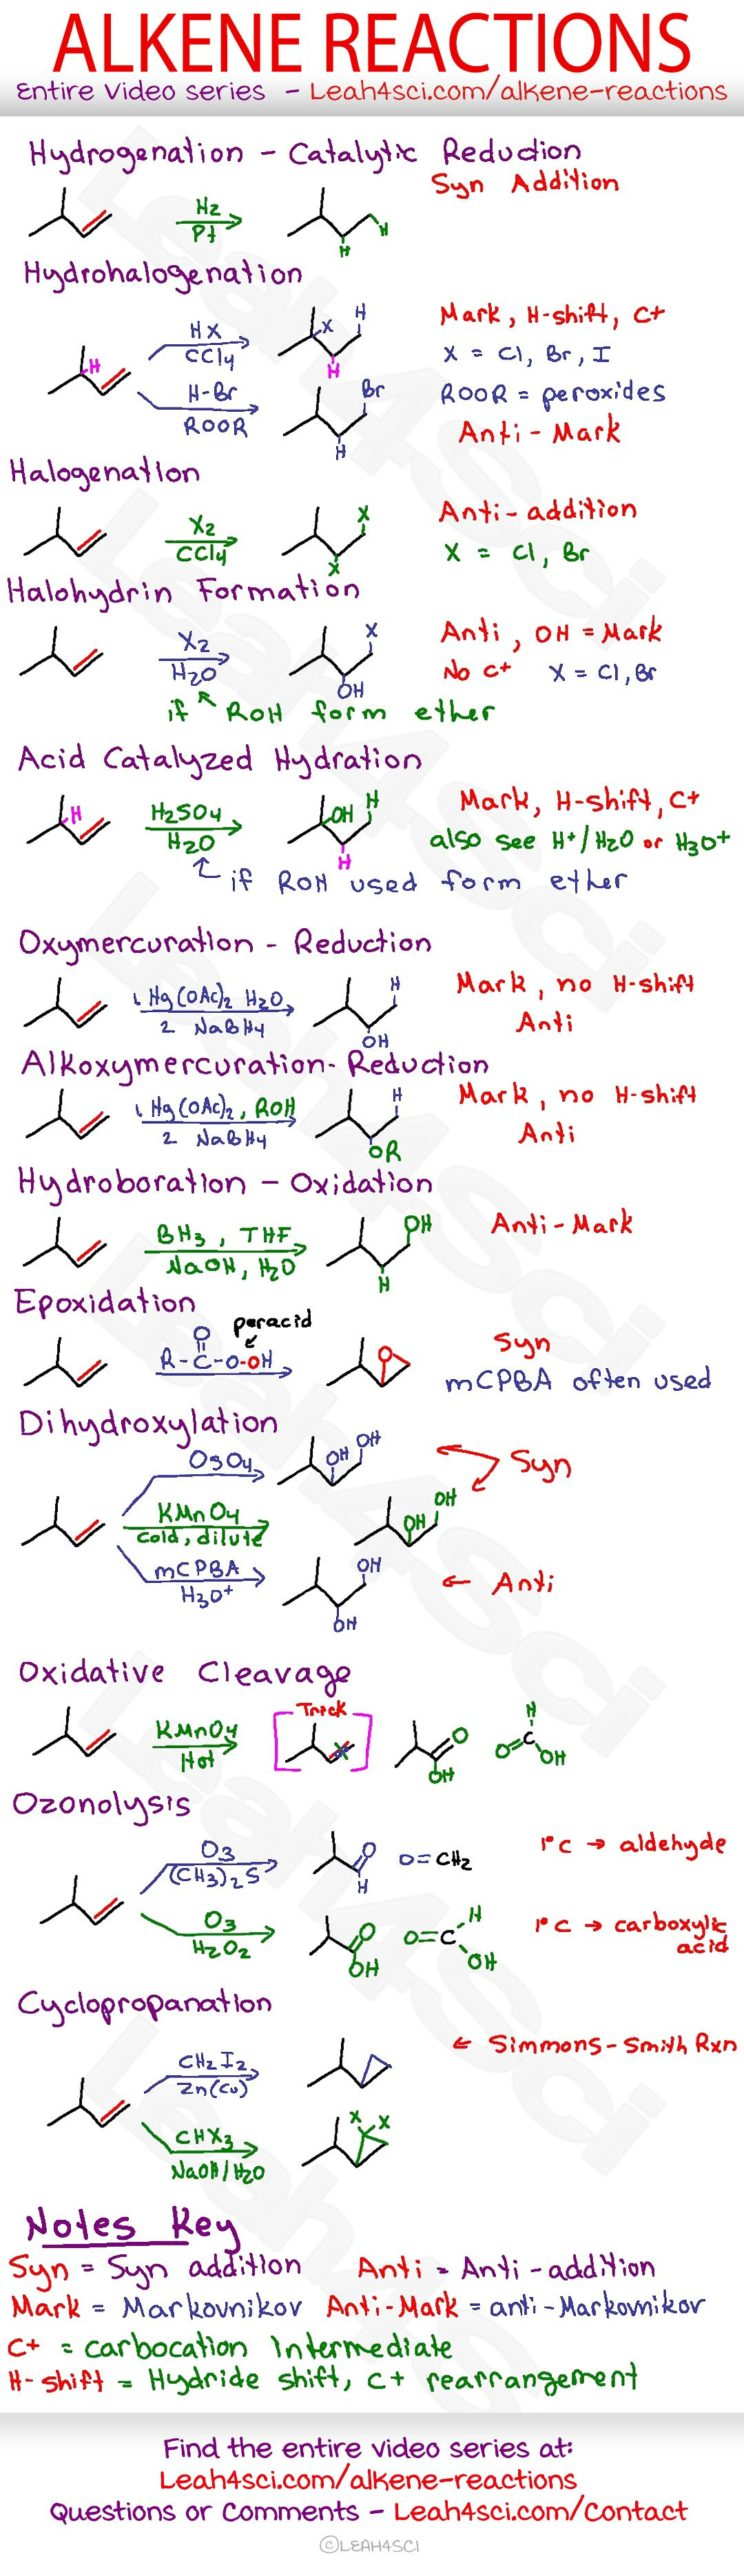 Alkene Reactions Organic Chemistry Cheat Sheet Study Guide - Online Test For Chemical Reactions And Equations